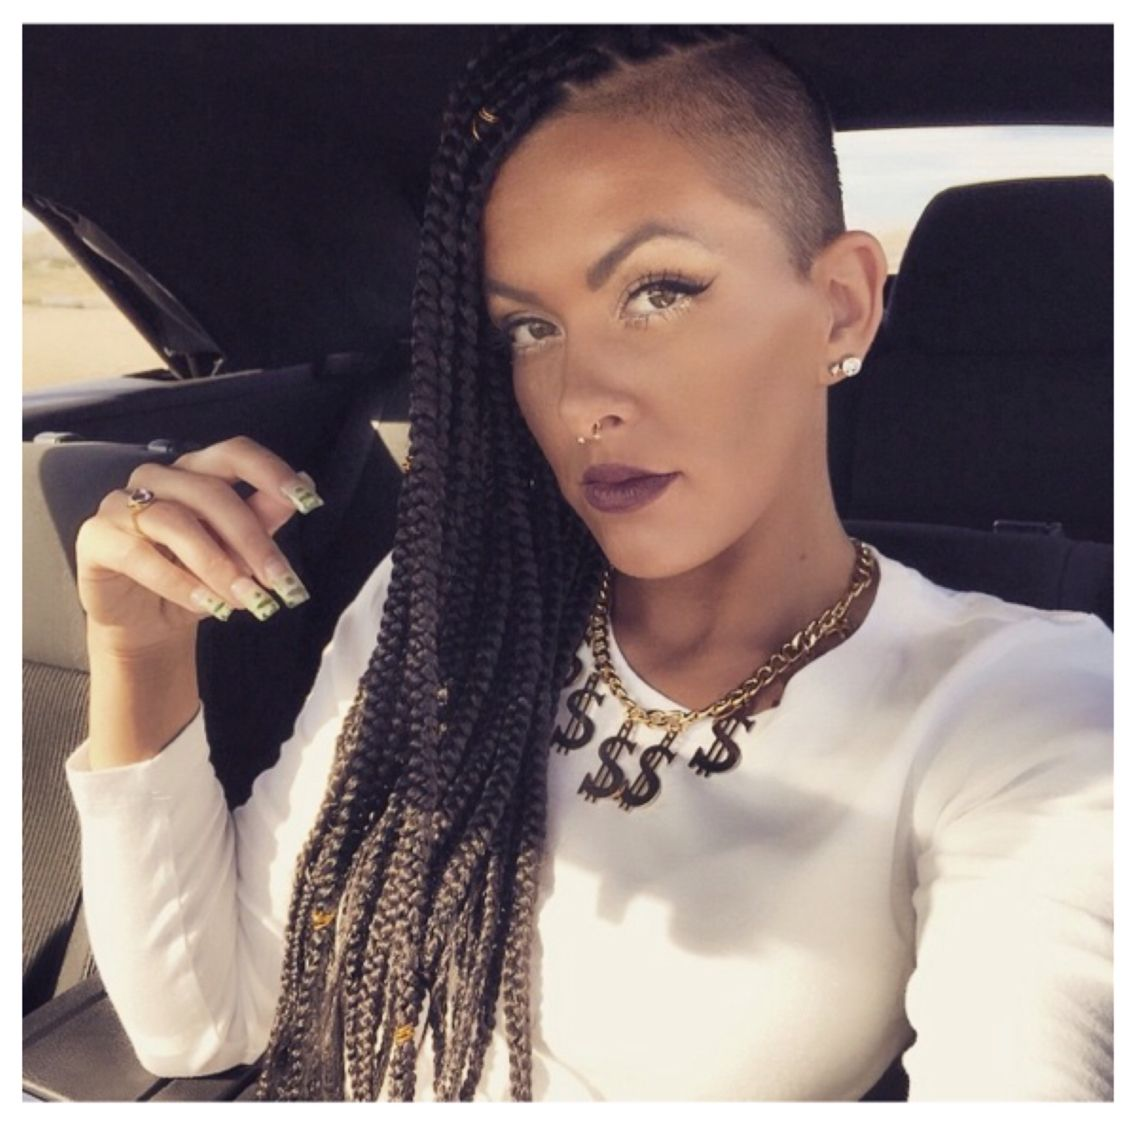 Jamaican Twists Hairstyles For Girls: Rocking This Look For My Upcoming Trip To Jamaica! Credit